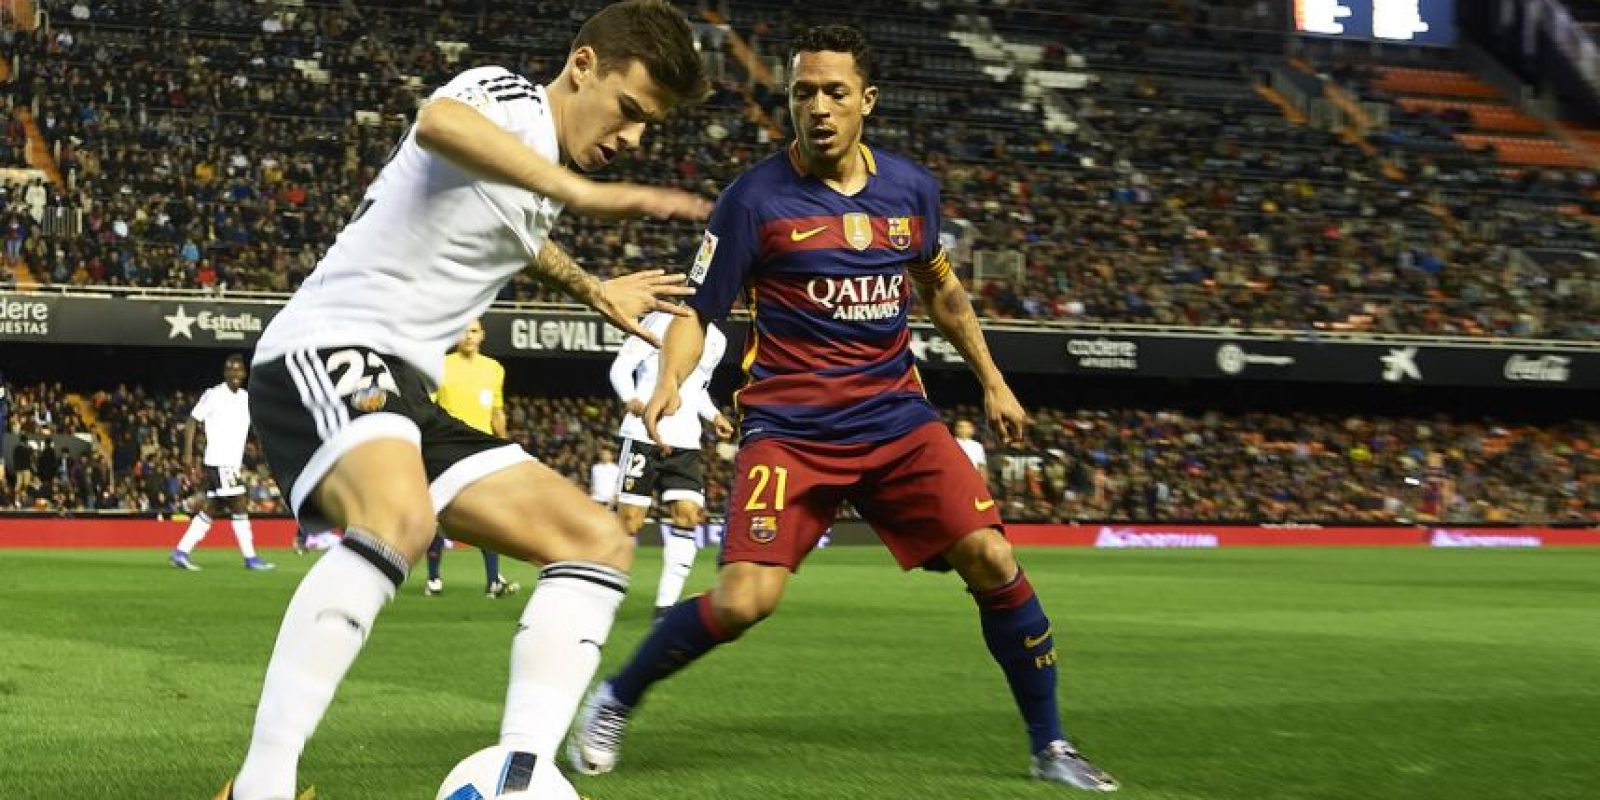 LIGA BBVA: 17 de abril / Barcelona vs. Valencia Foto: Getty Images